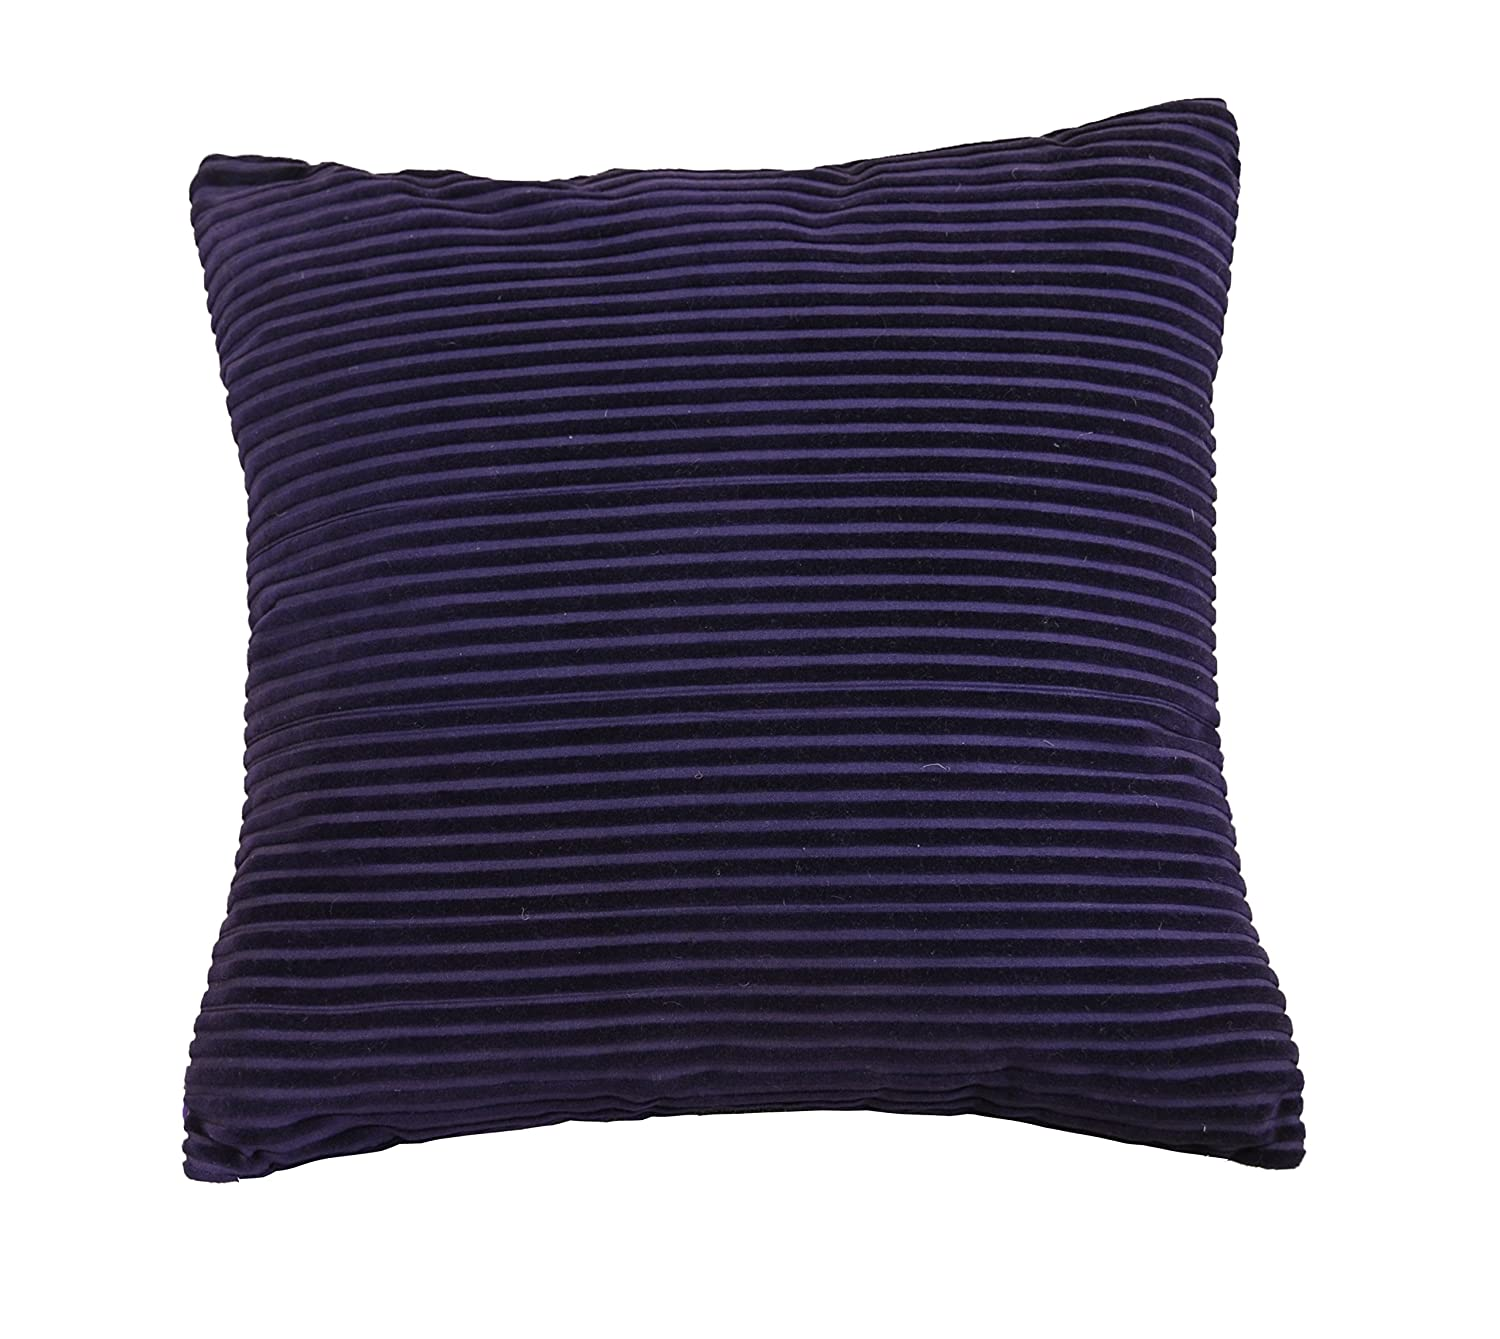 AM Home 0196 Solid Strip Square Pillow Grey